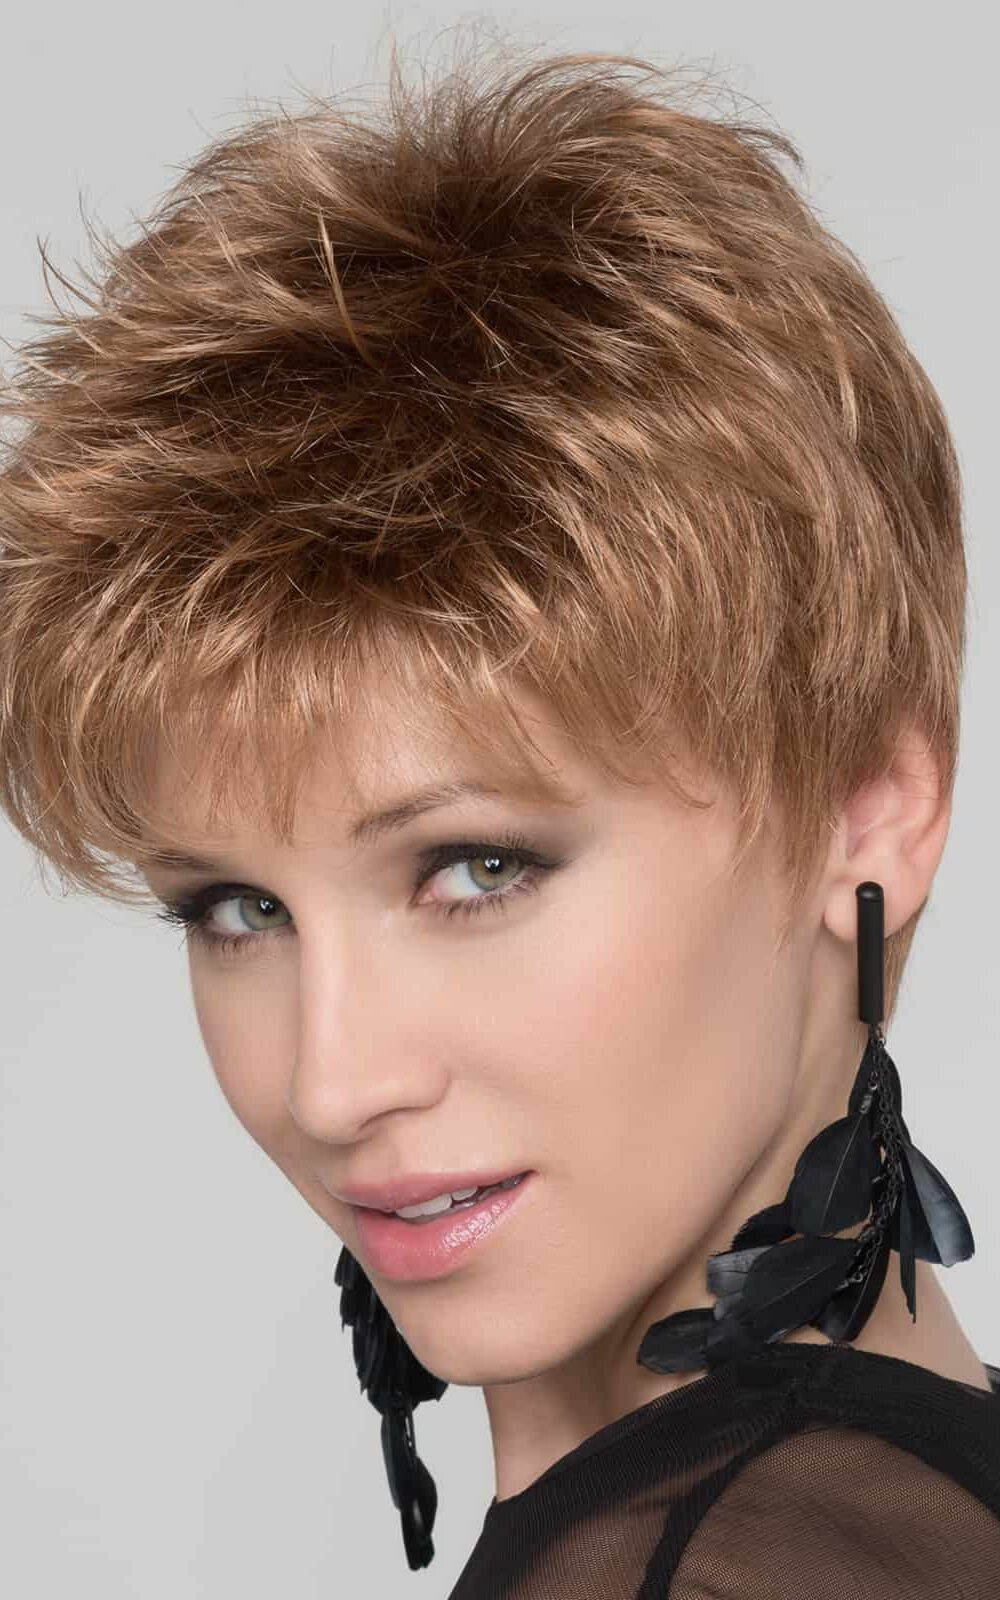 GOLF by Ellen Wille | This short pixie wig can be worn right out of the box | Colour Cognac Mix